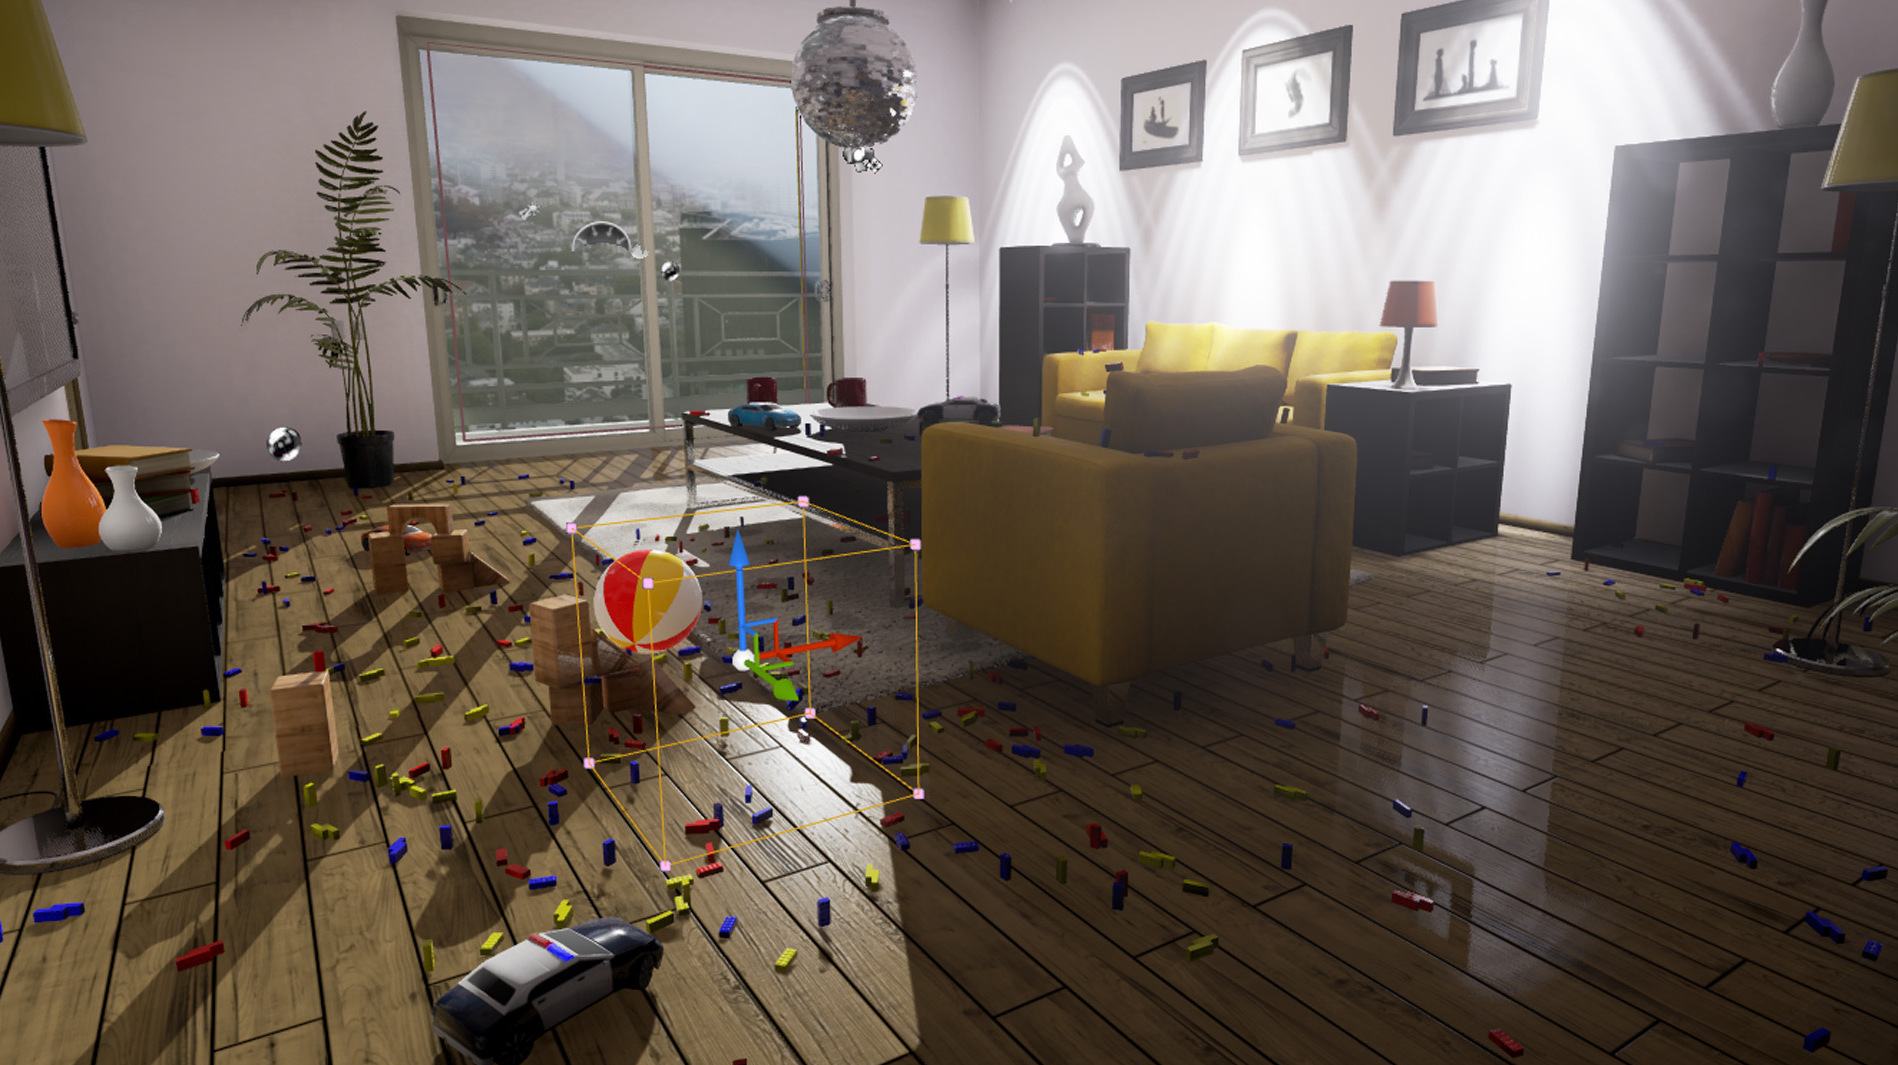 Lighting & Rendering in Unreal Engine: An Evening with Epic